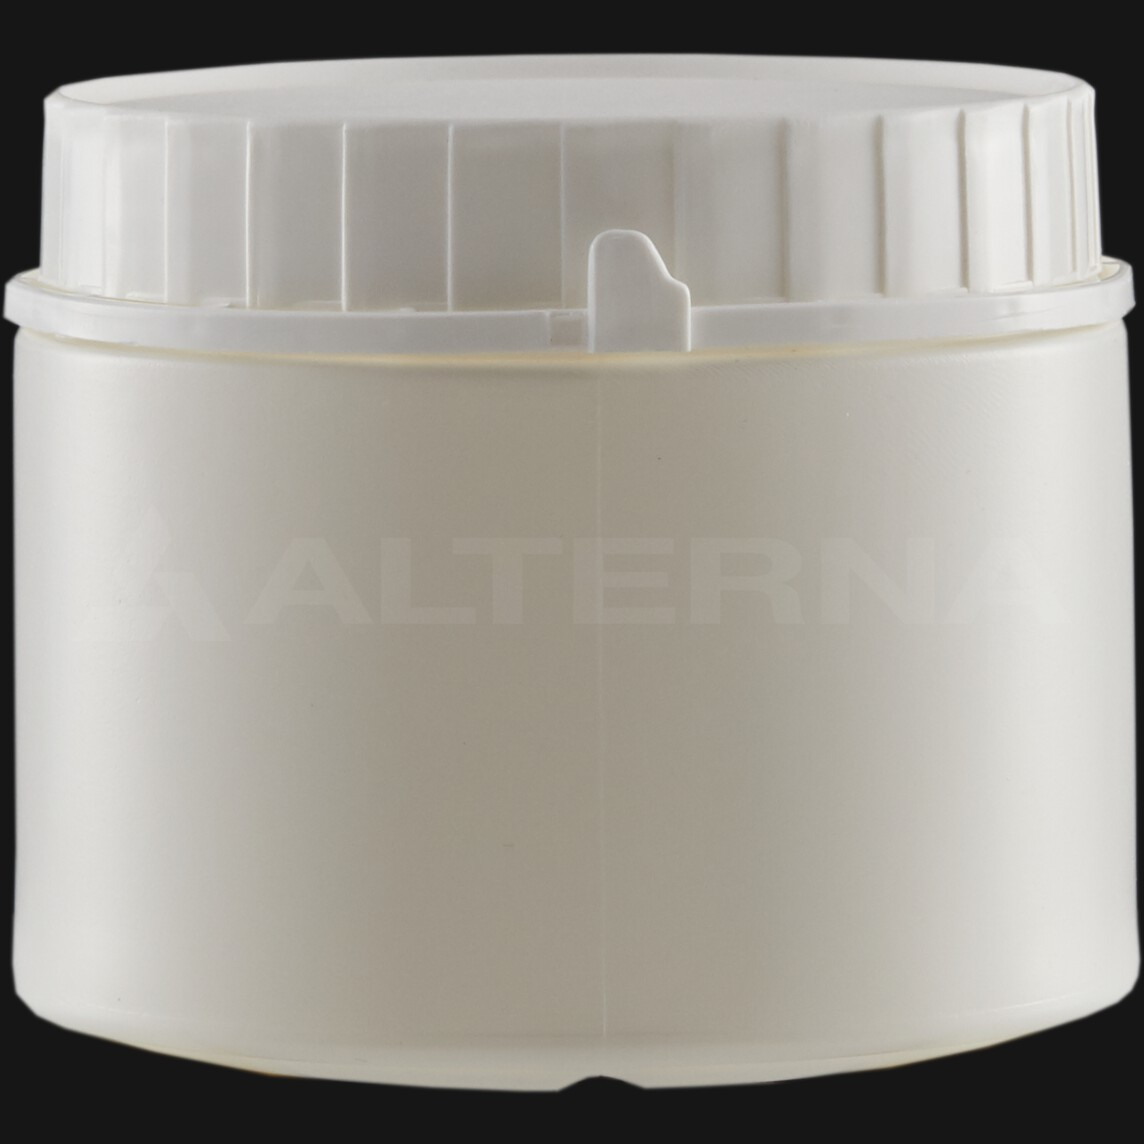 500 gr HDPE Jar with Secure Cap